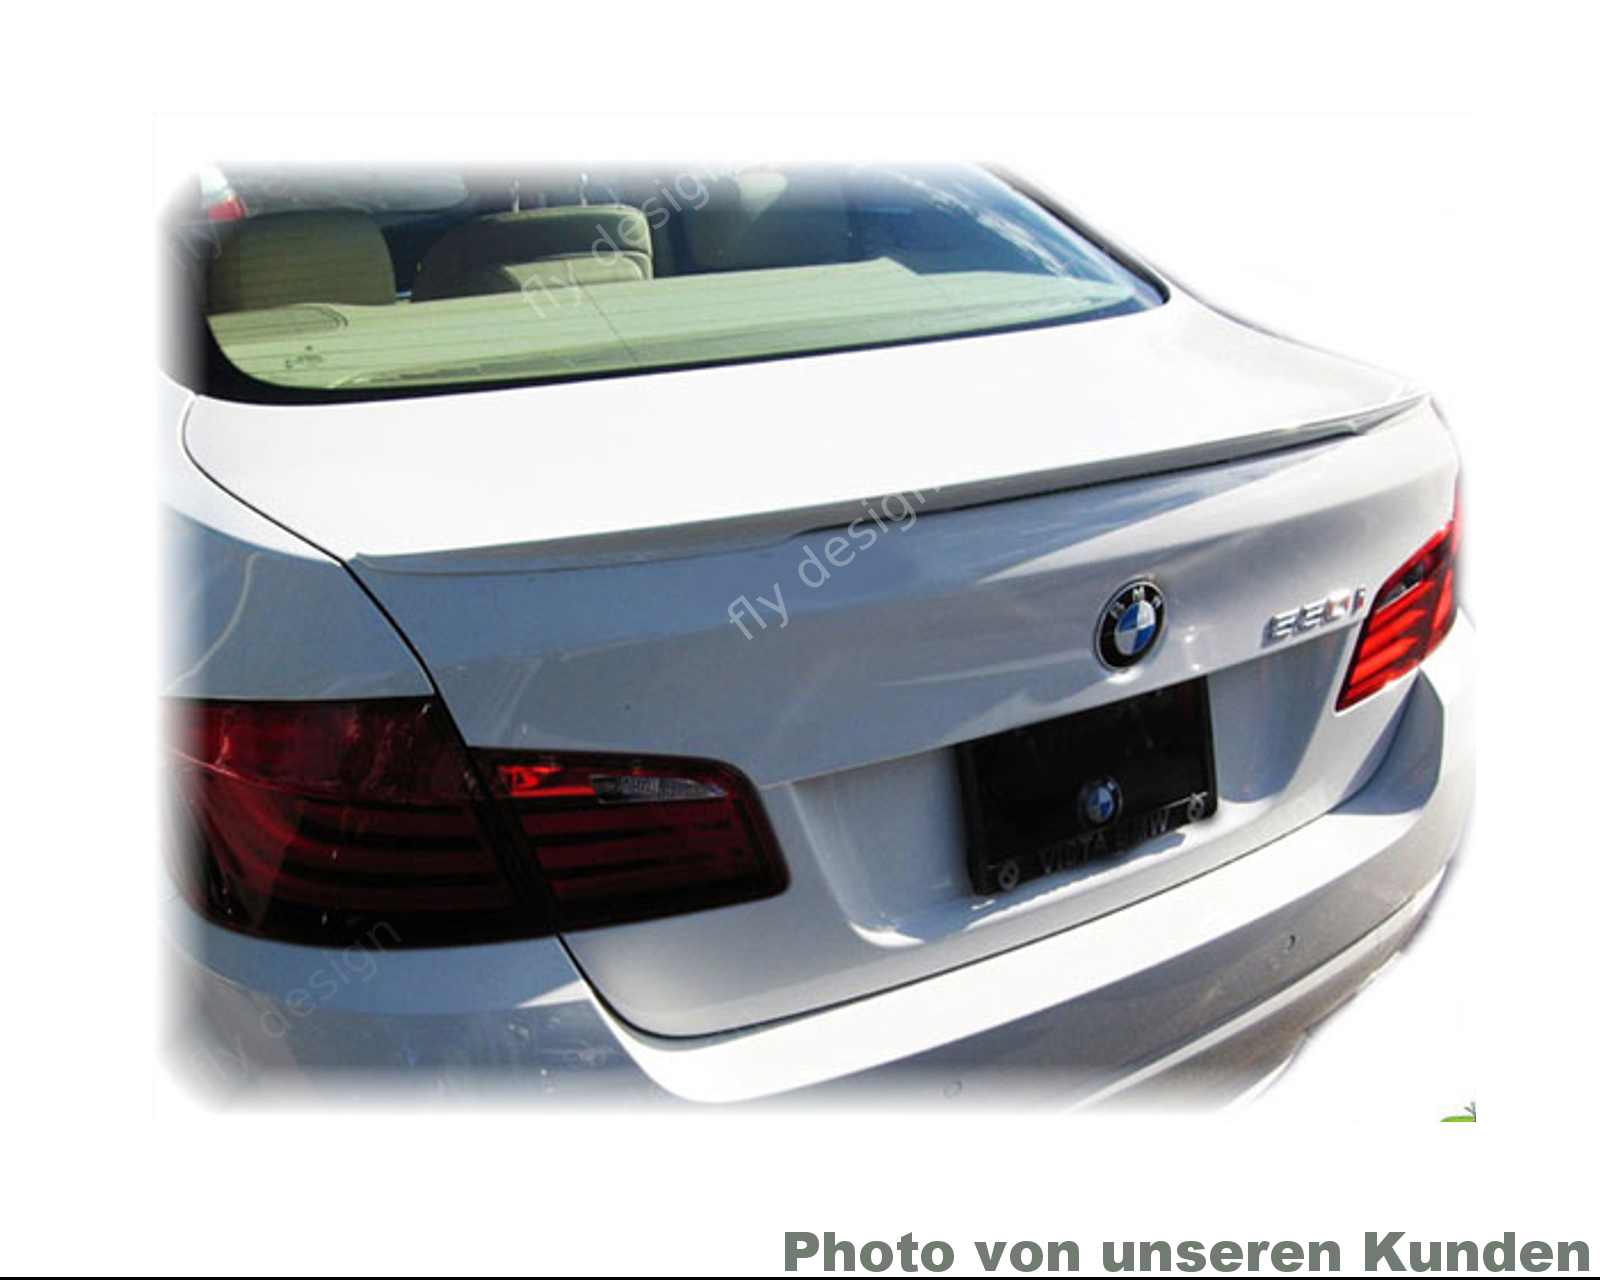 heckspoiler heckfl gel passend bmw f10 limo spoiler type. Black Bedroom Furniture Sets. Home Design Ideas